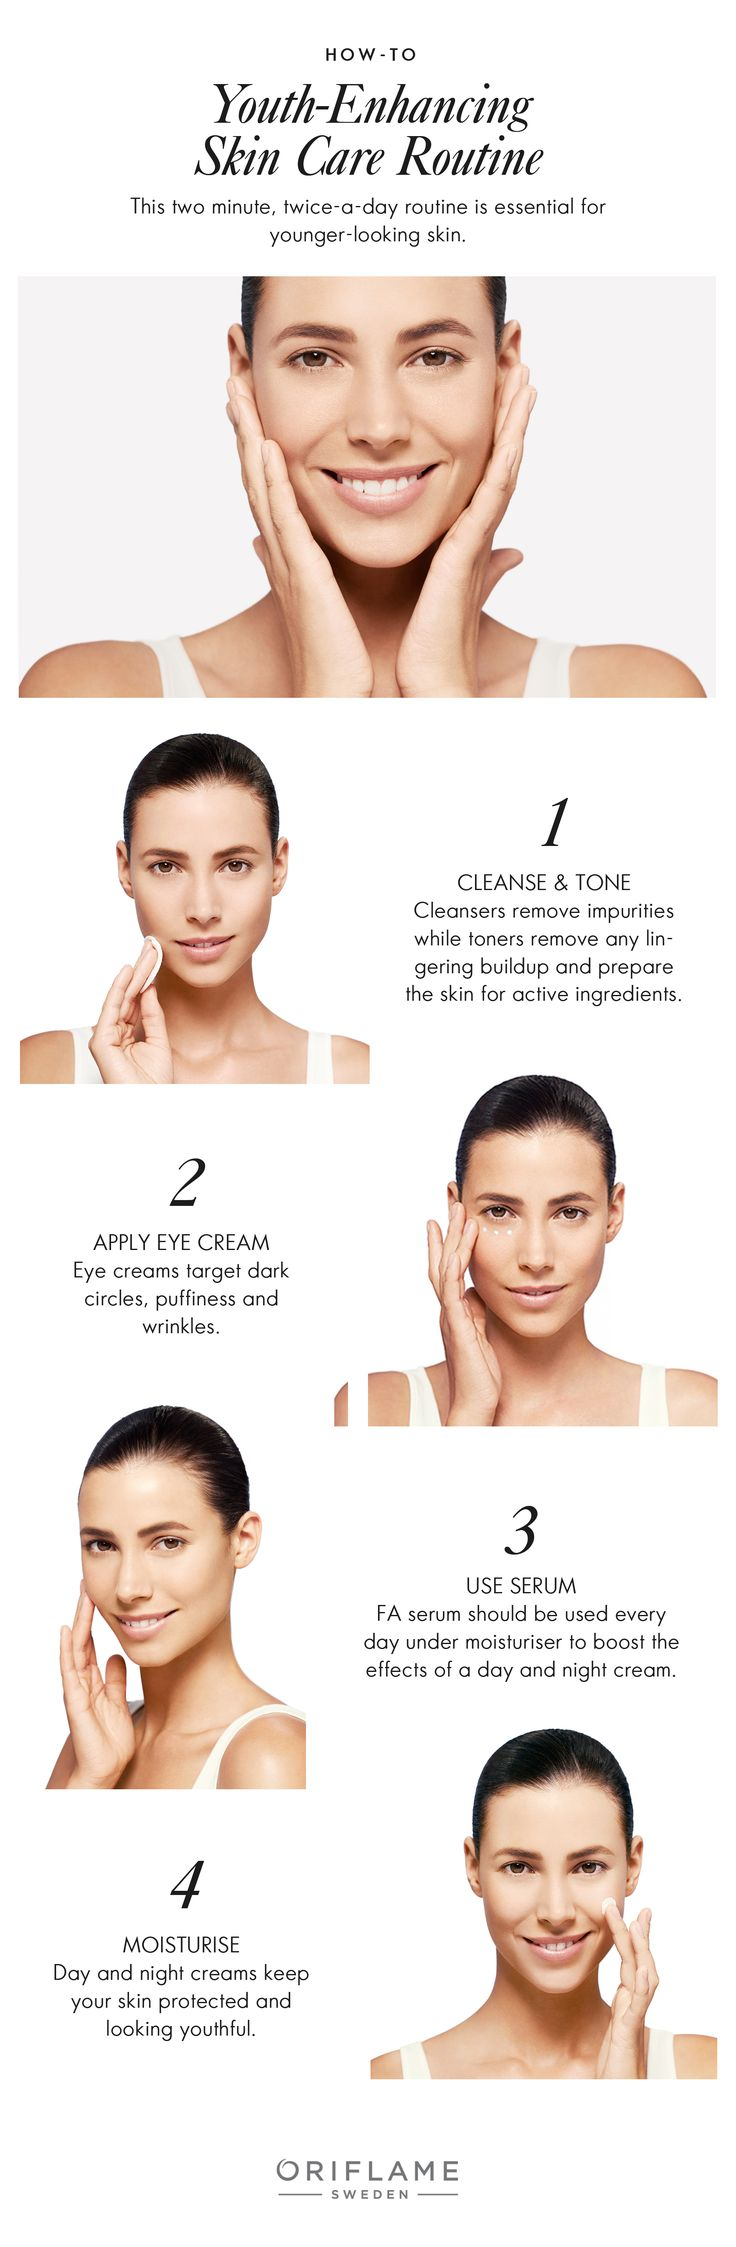 For youthful-looking skin, just follow this two-minute, twice-a-day routine!